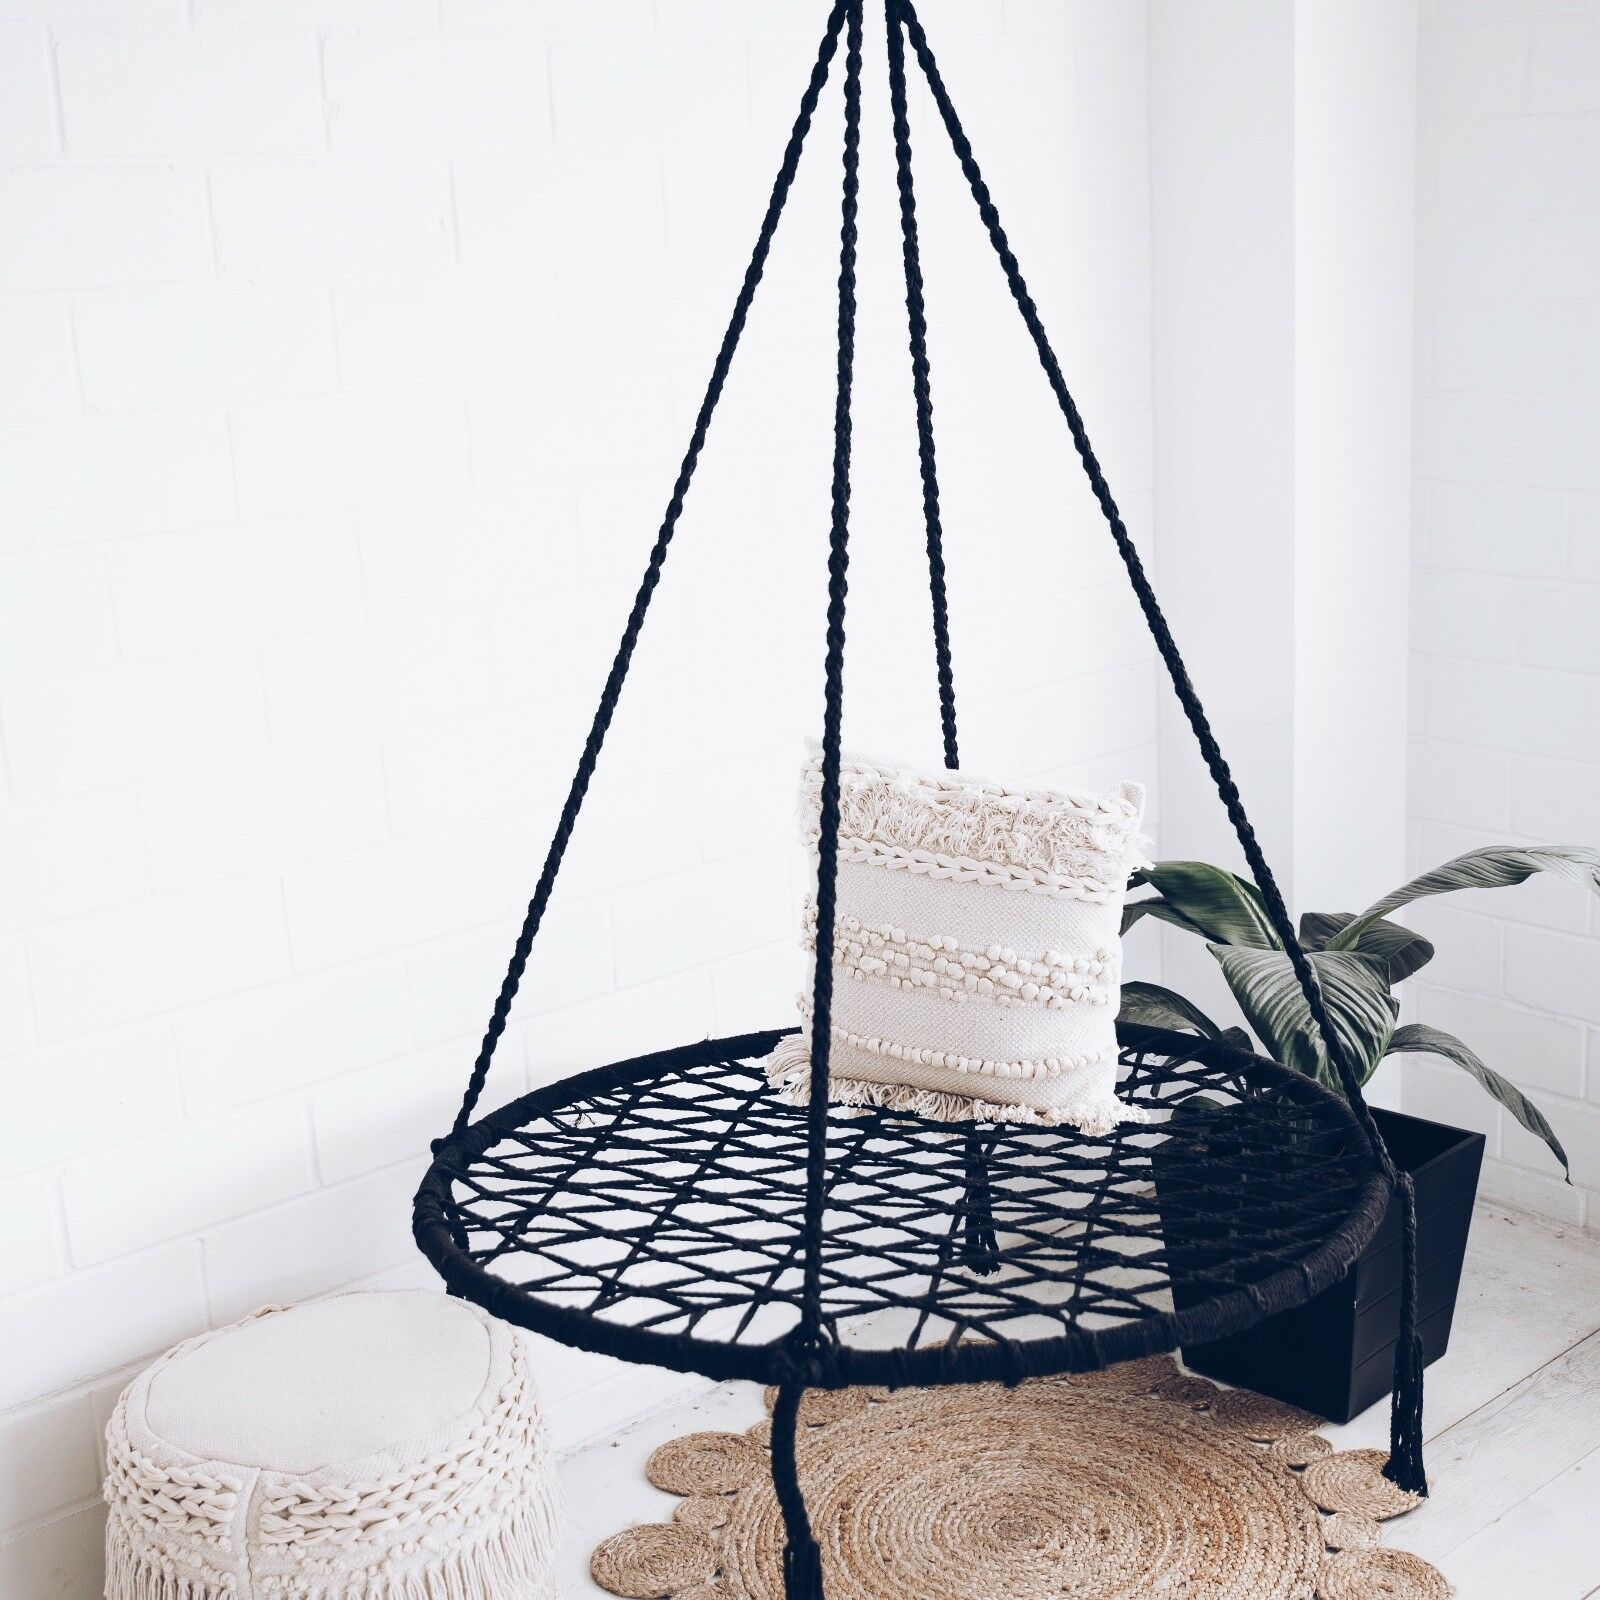 hanging chair luxury rustic dining table and chairs macrame nest swing hammock relax in comfort